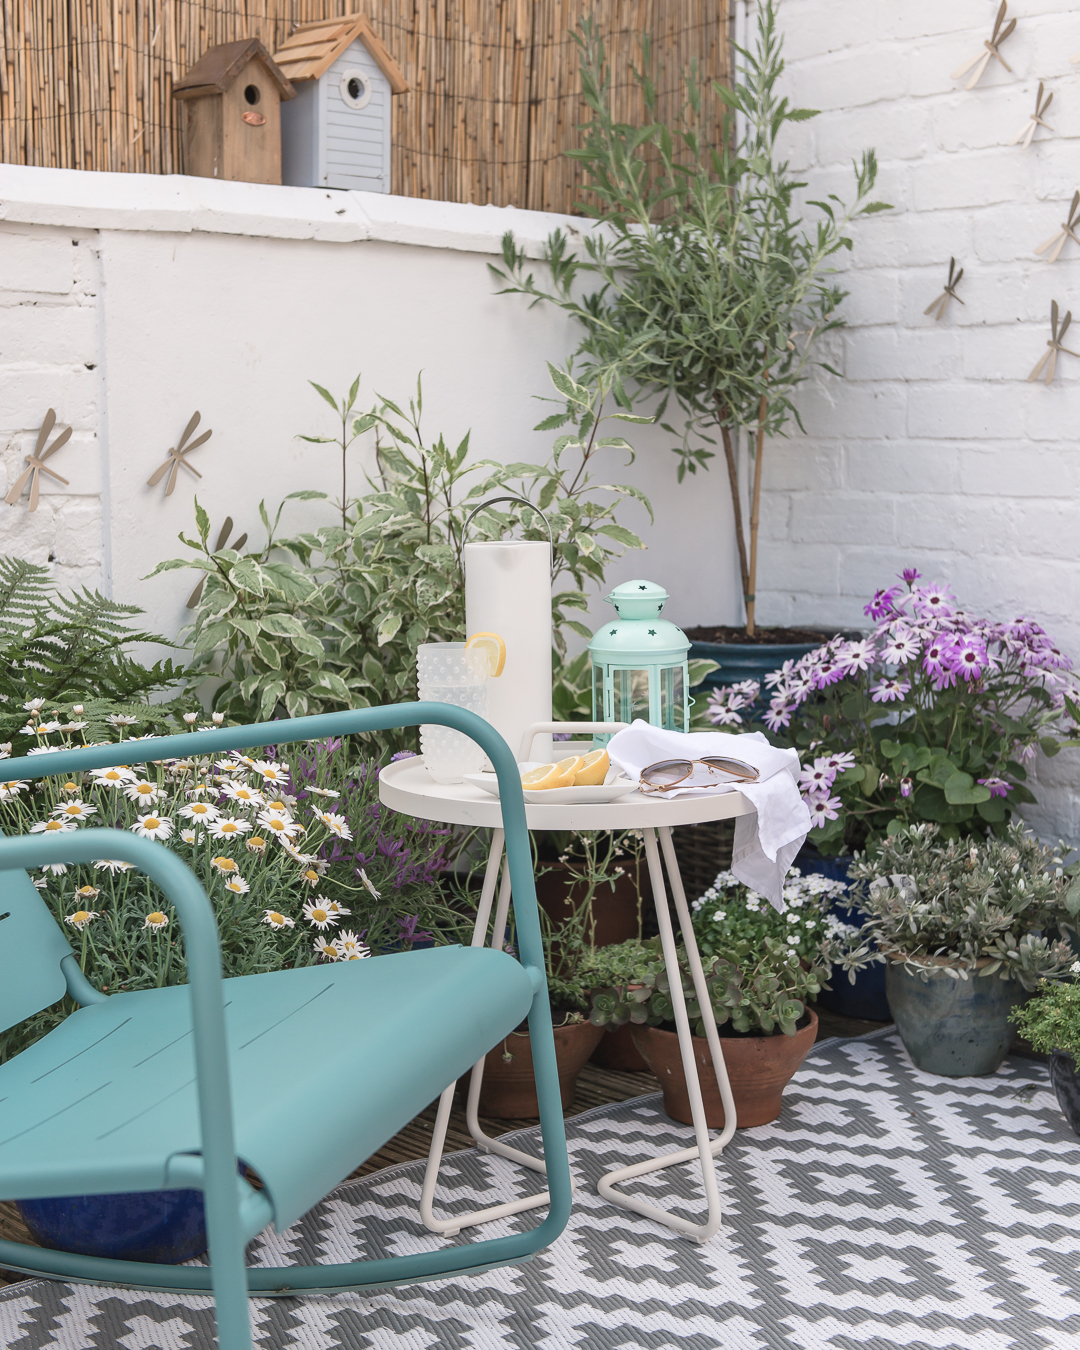 5 simple ways to refresh your outside space with cane-line furniture